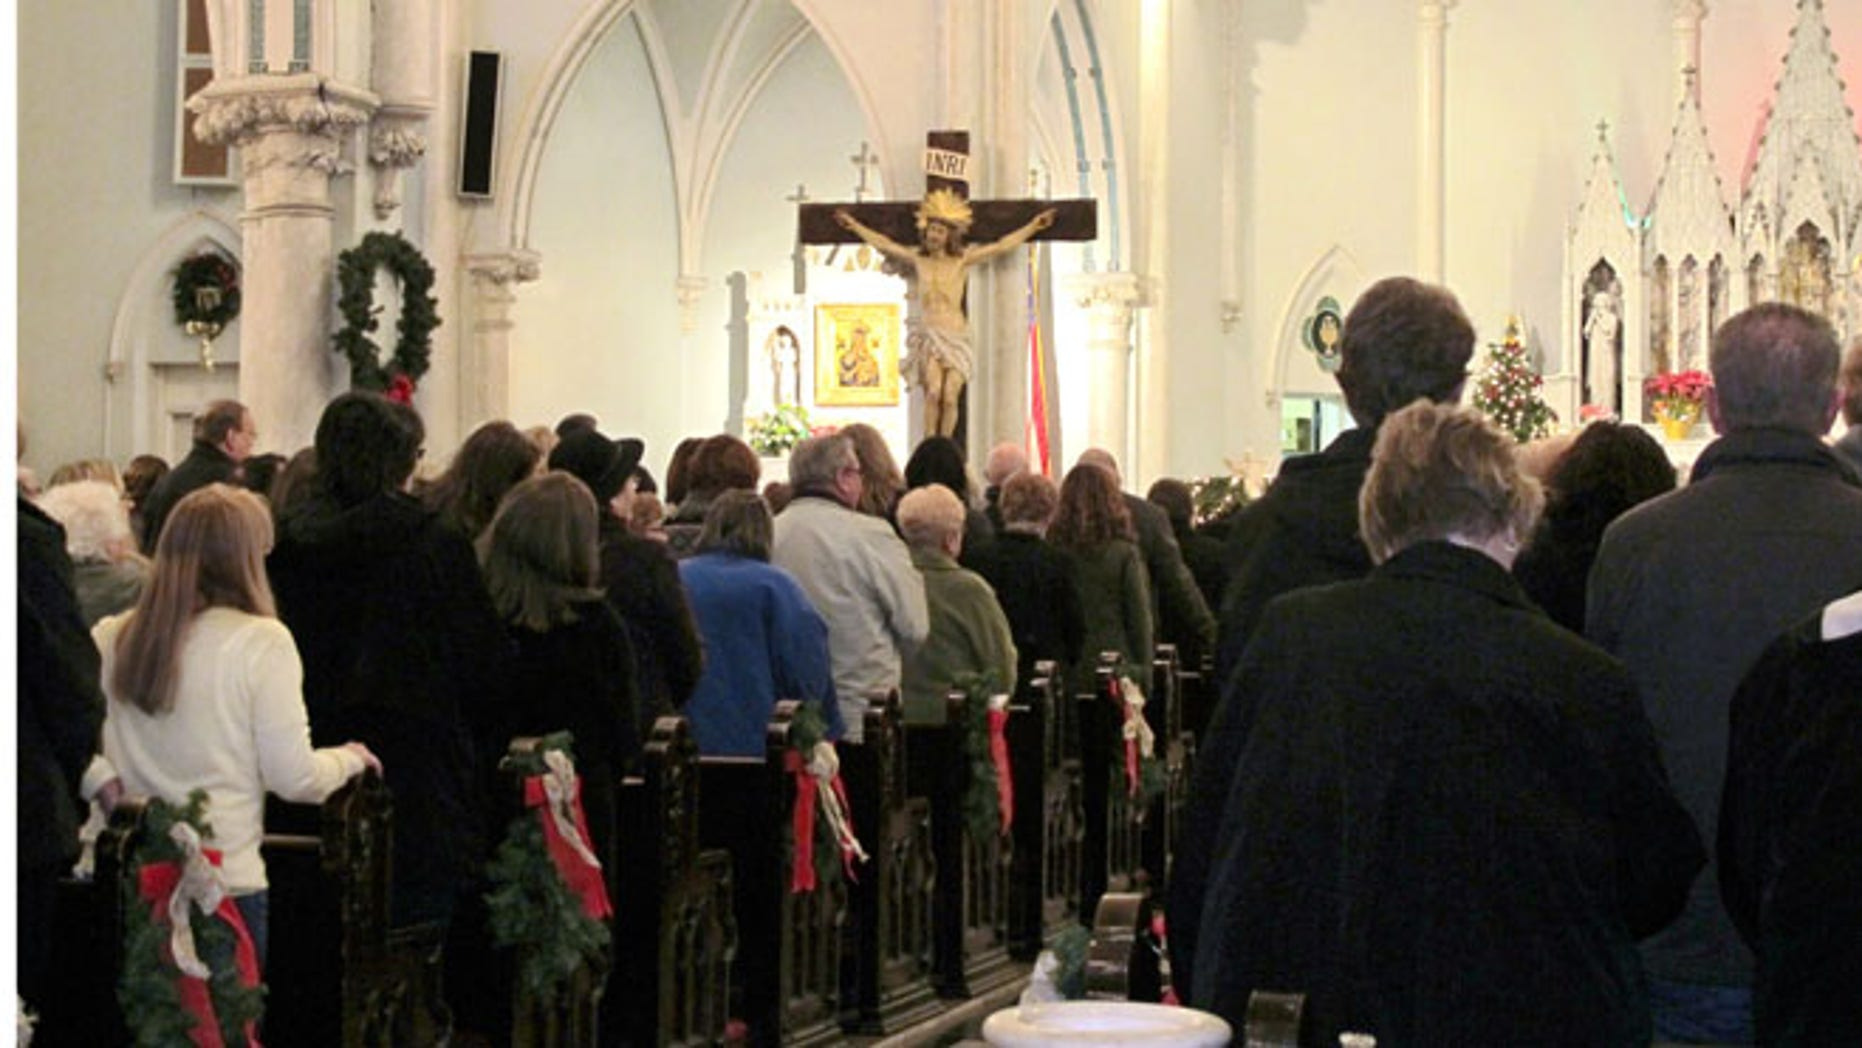 Jan. 12, 2014 : This photo shows people gathered for mass inside Our Lady of Perpetual Help Church in Buffalo, N.Y., during a Mass Mob.